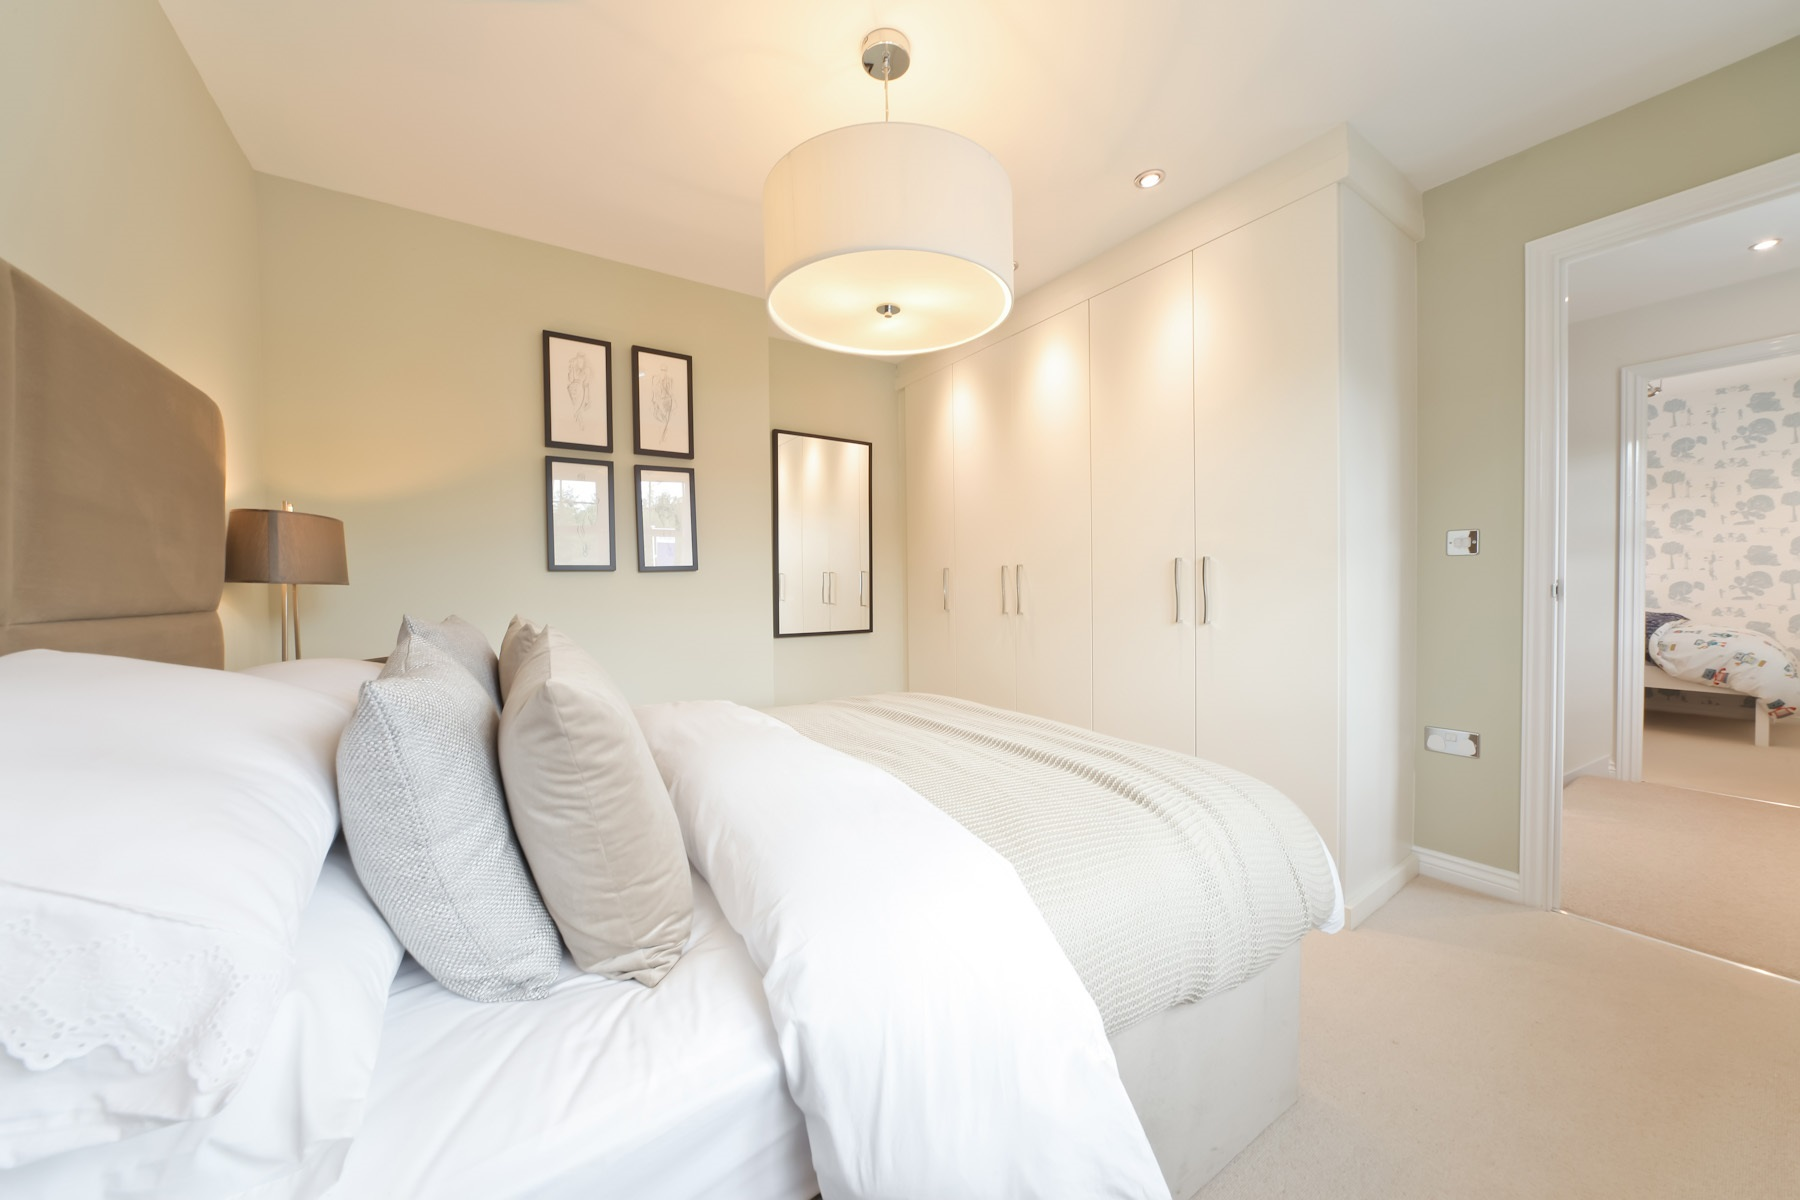 018_BH_Downham_Bedroom_2